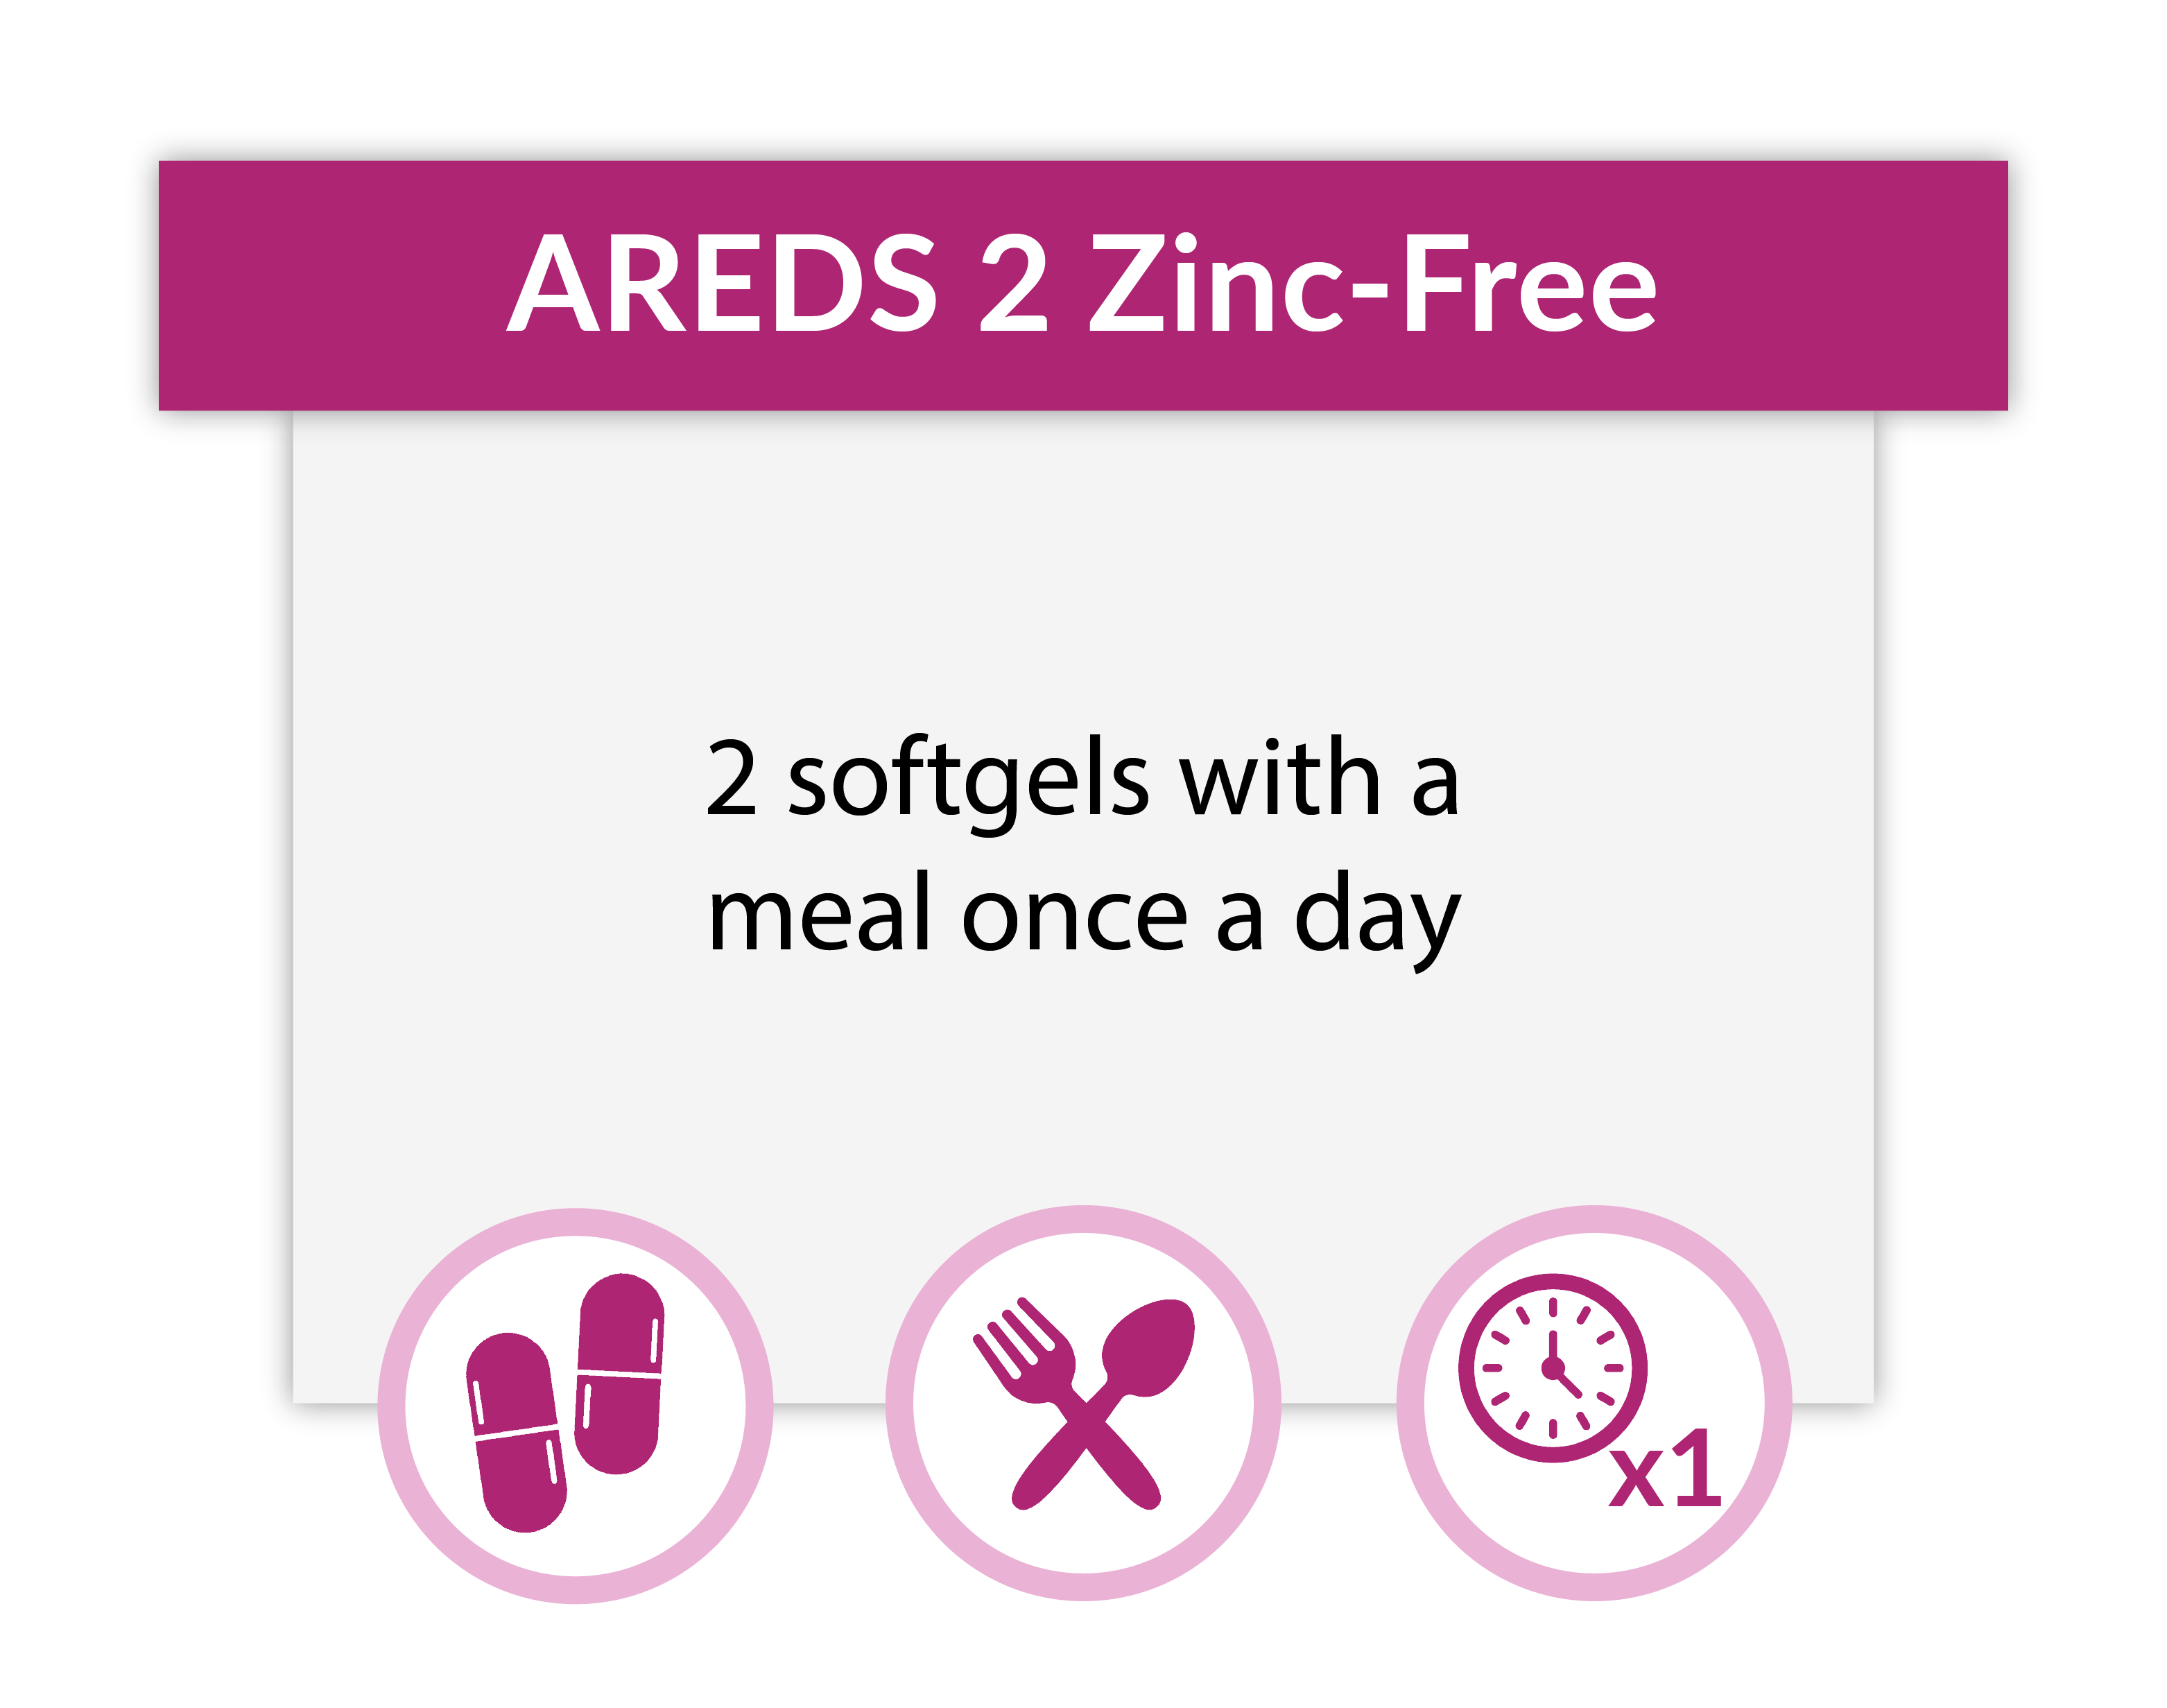 Take 2 AREDS 2 Plus Zinc-Free softgels with a meal once a day.